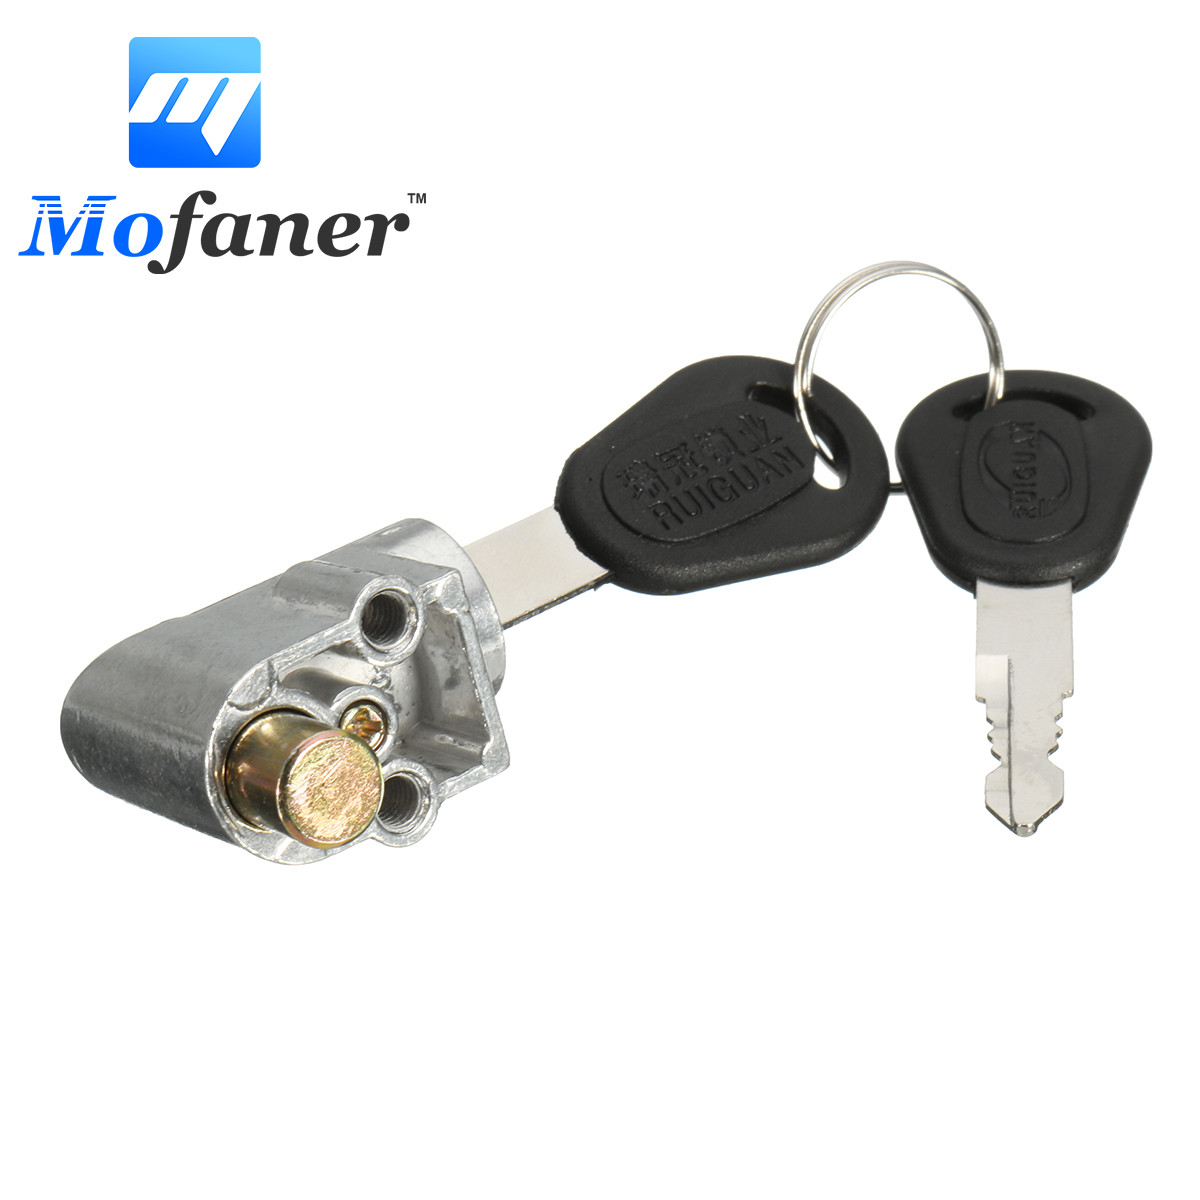 Mofaner Ignition Switch Battery Safety Pack Box Lock + 2 Key For Motorcycle Electric Bike Scooter E-bike